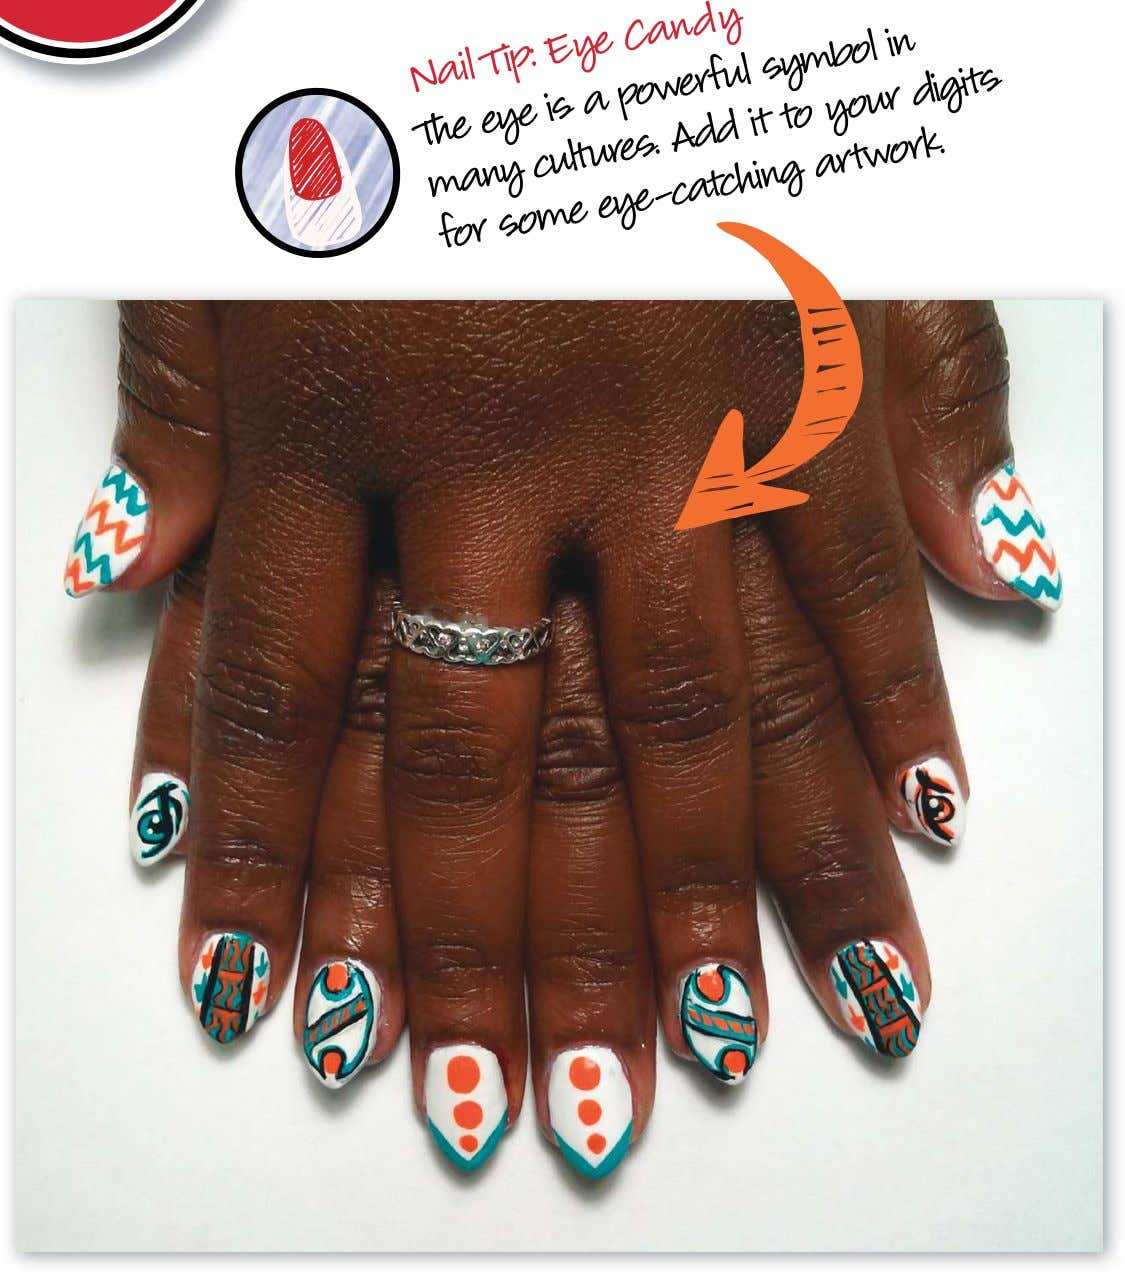 Eye Candy Nail Tip: Add it symbol The a powerful your in digits many eye